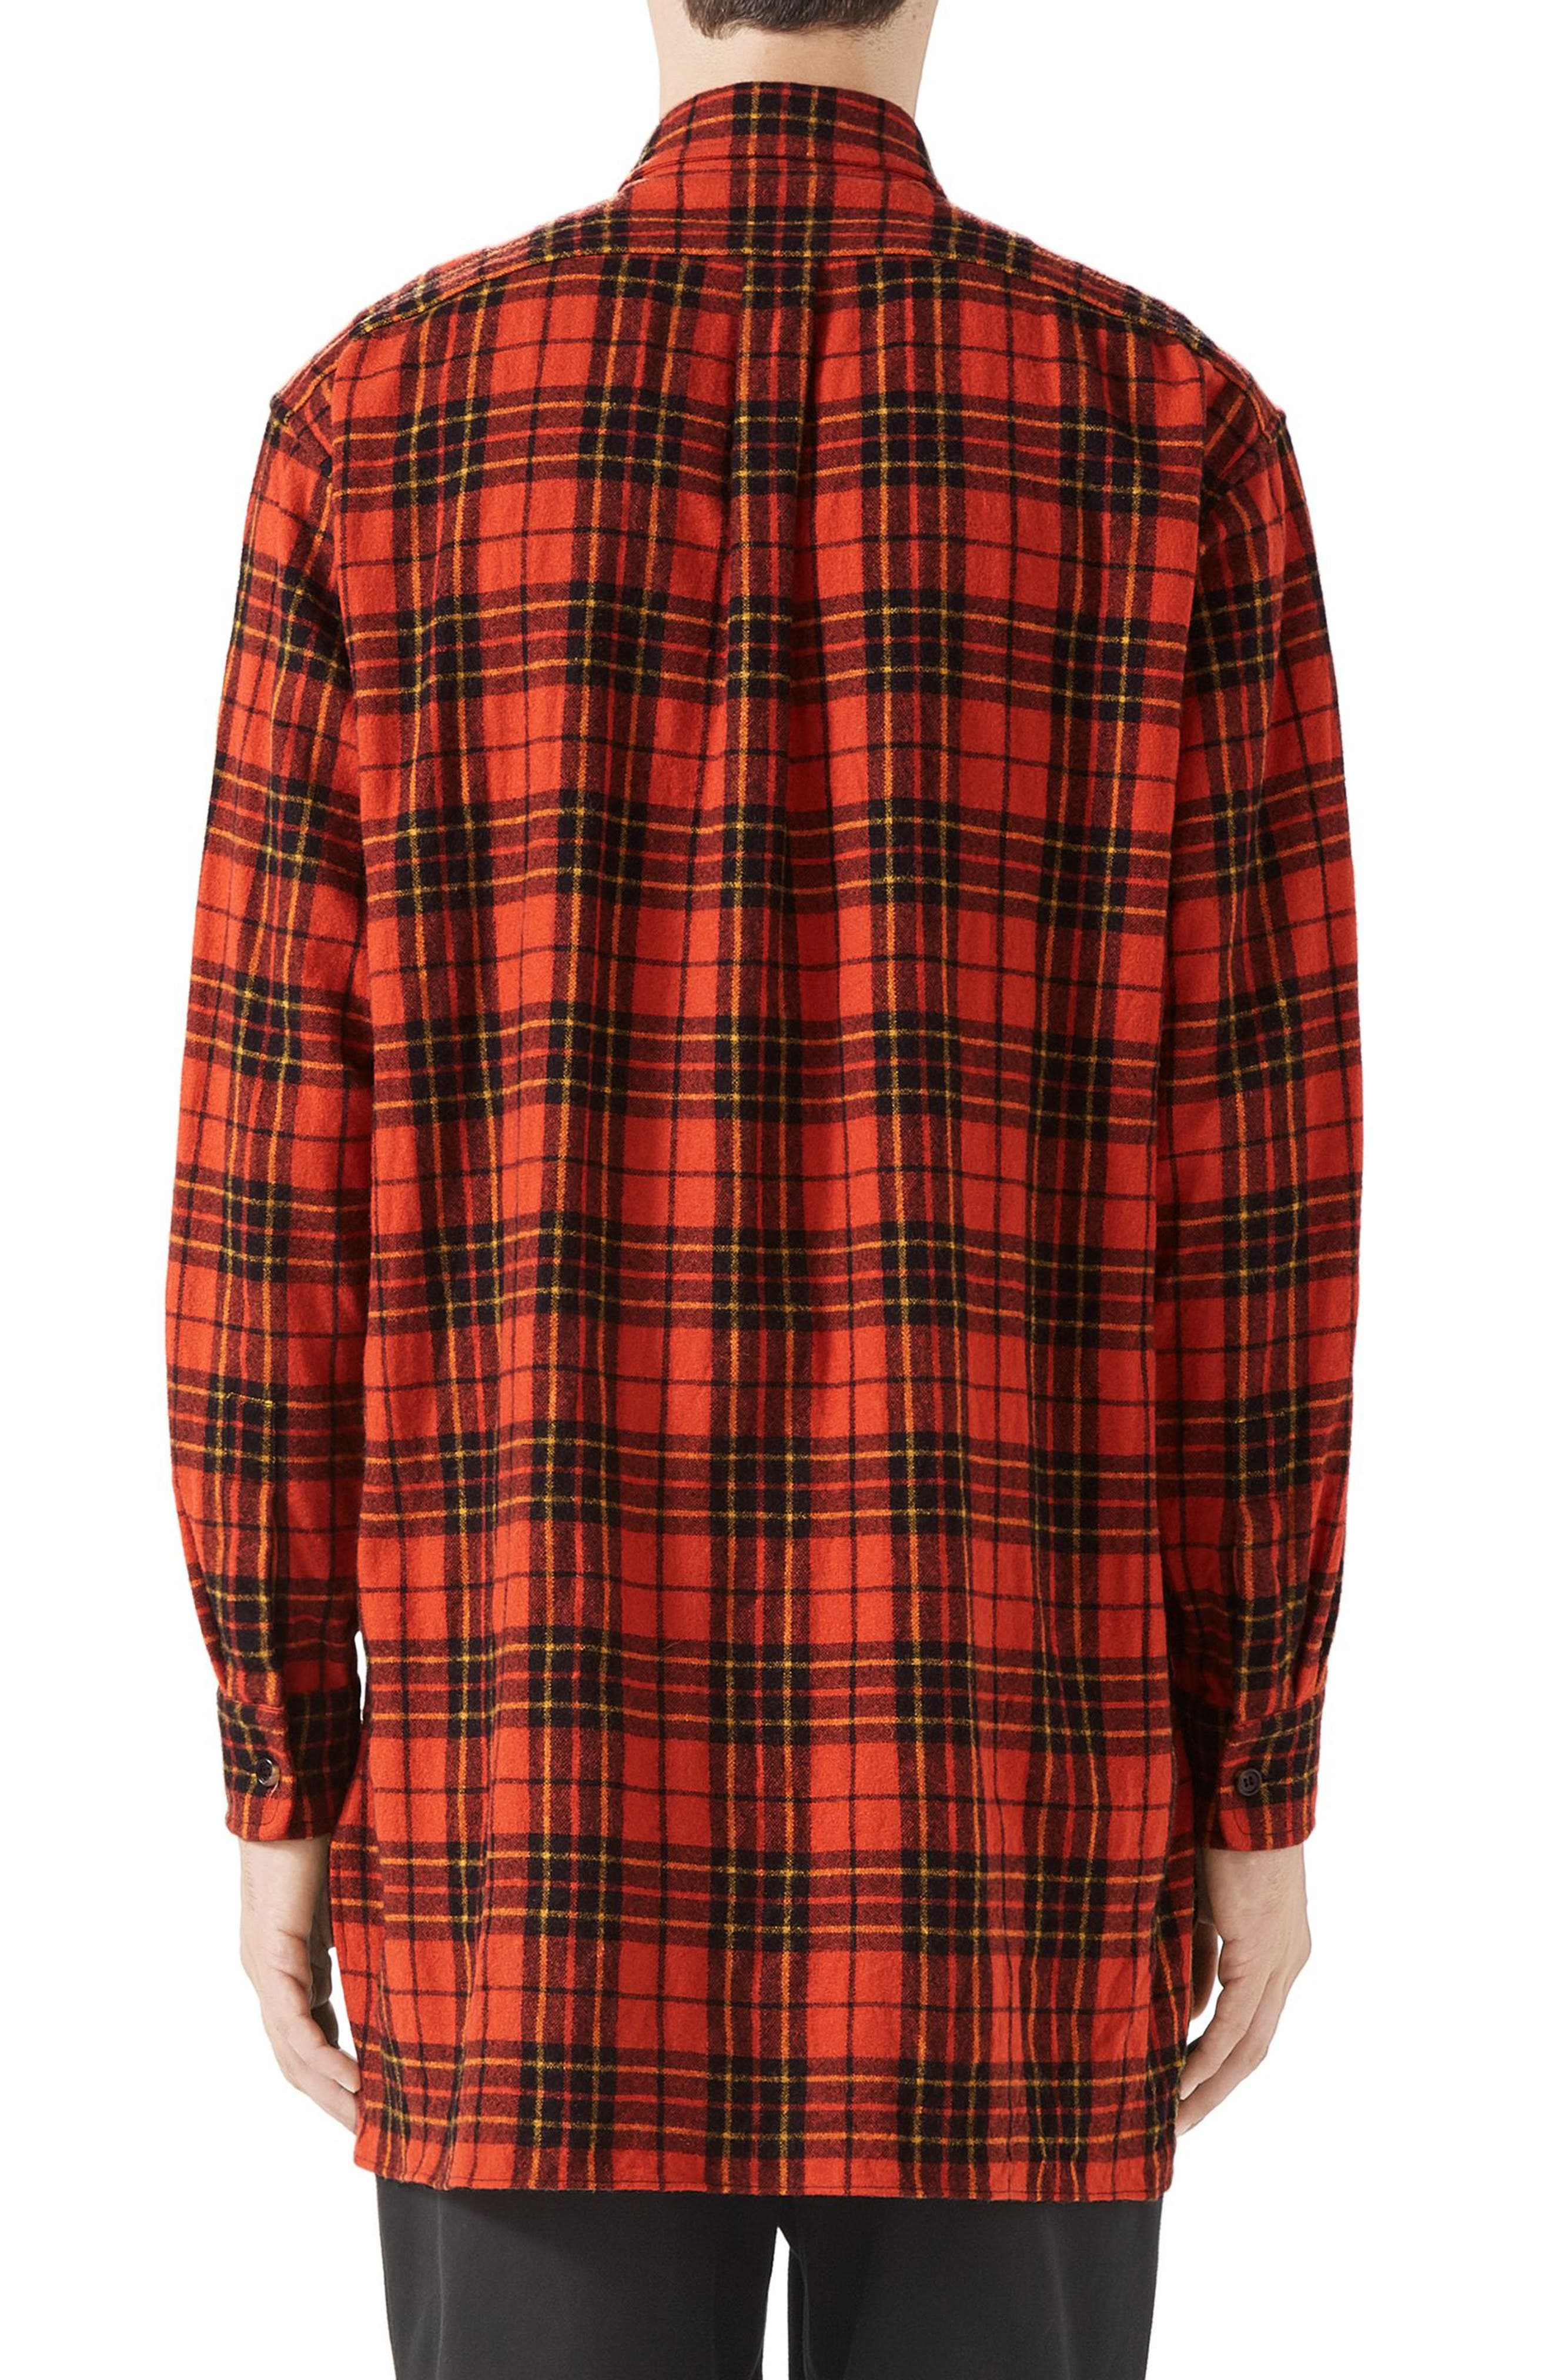 Plaid Flannel Long Sport Shirt,                             Alternate thumbnail 2, color,                             ORANGE BLACK AND YELLOW